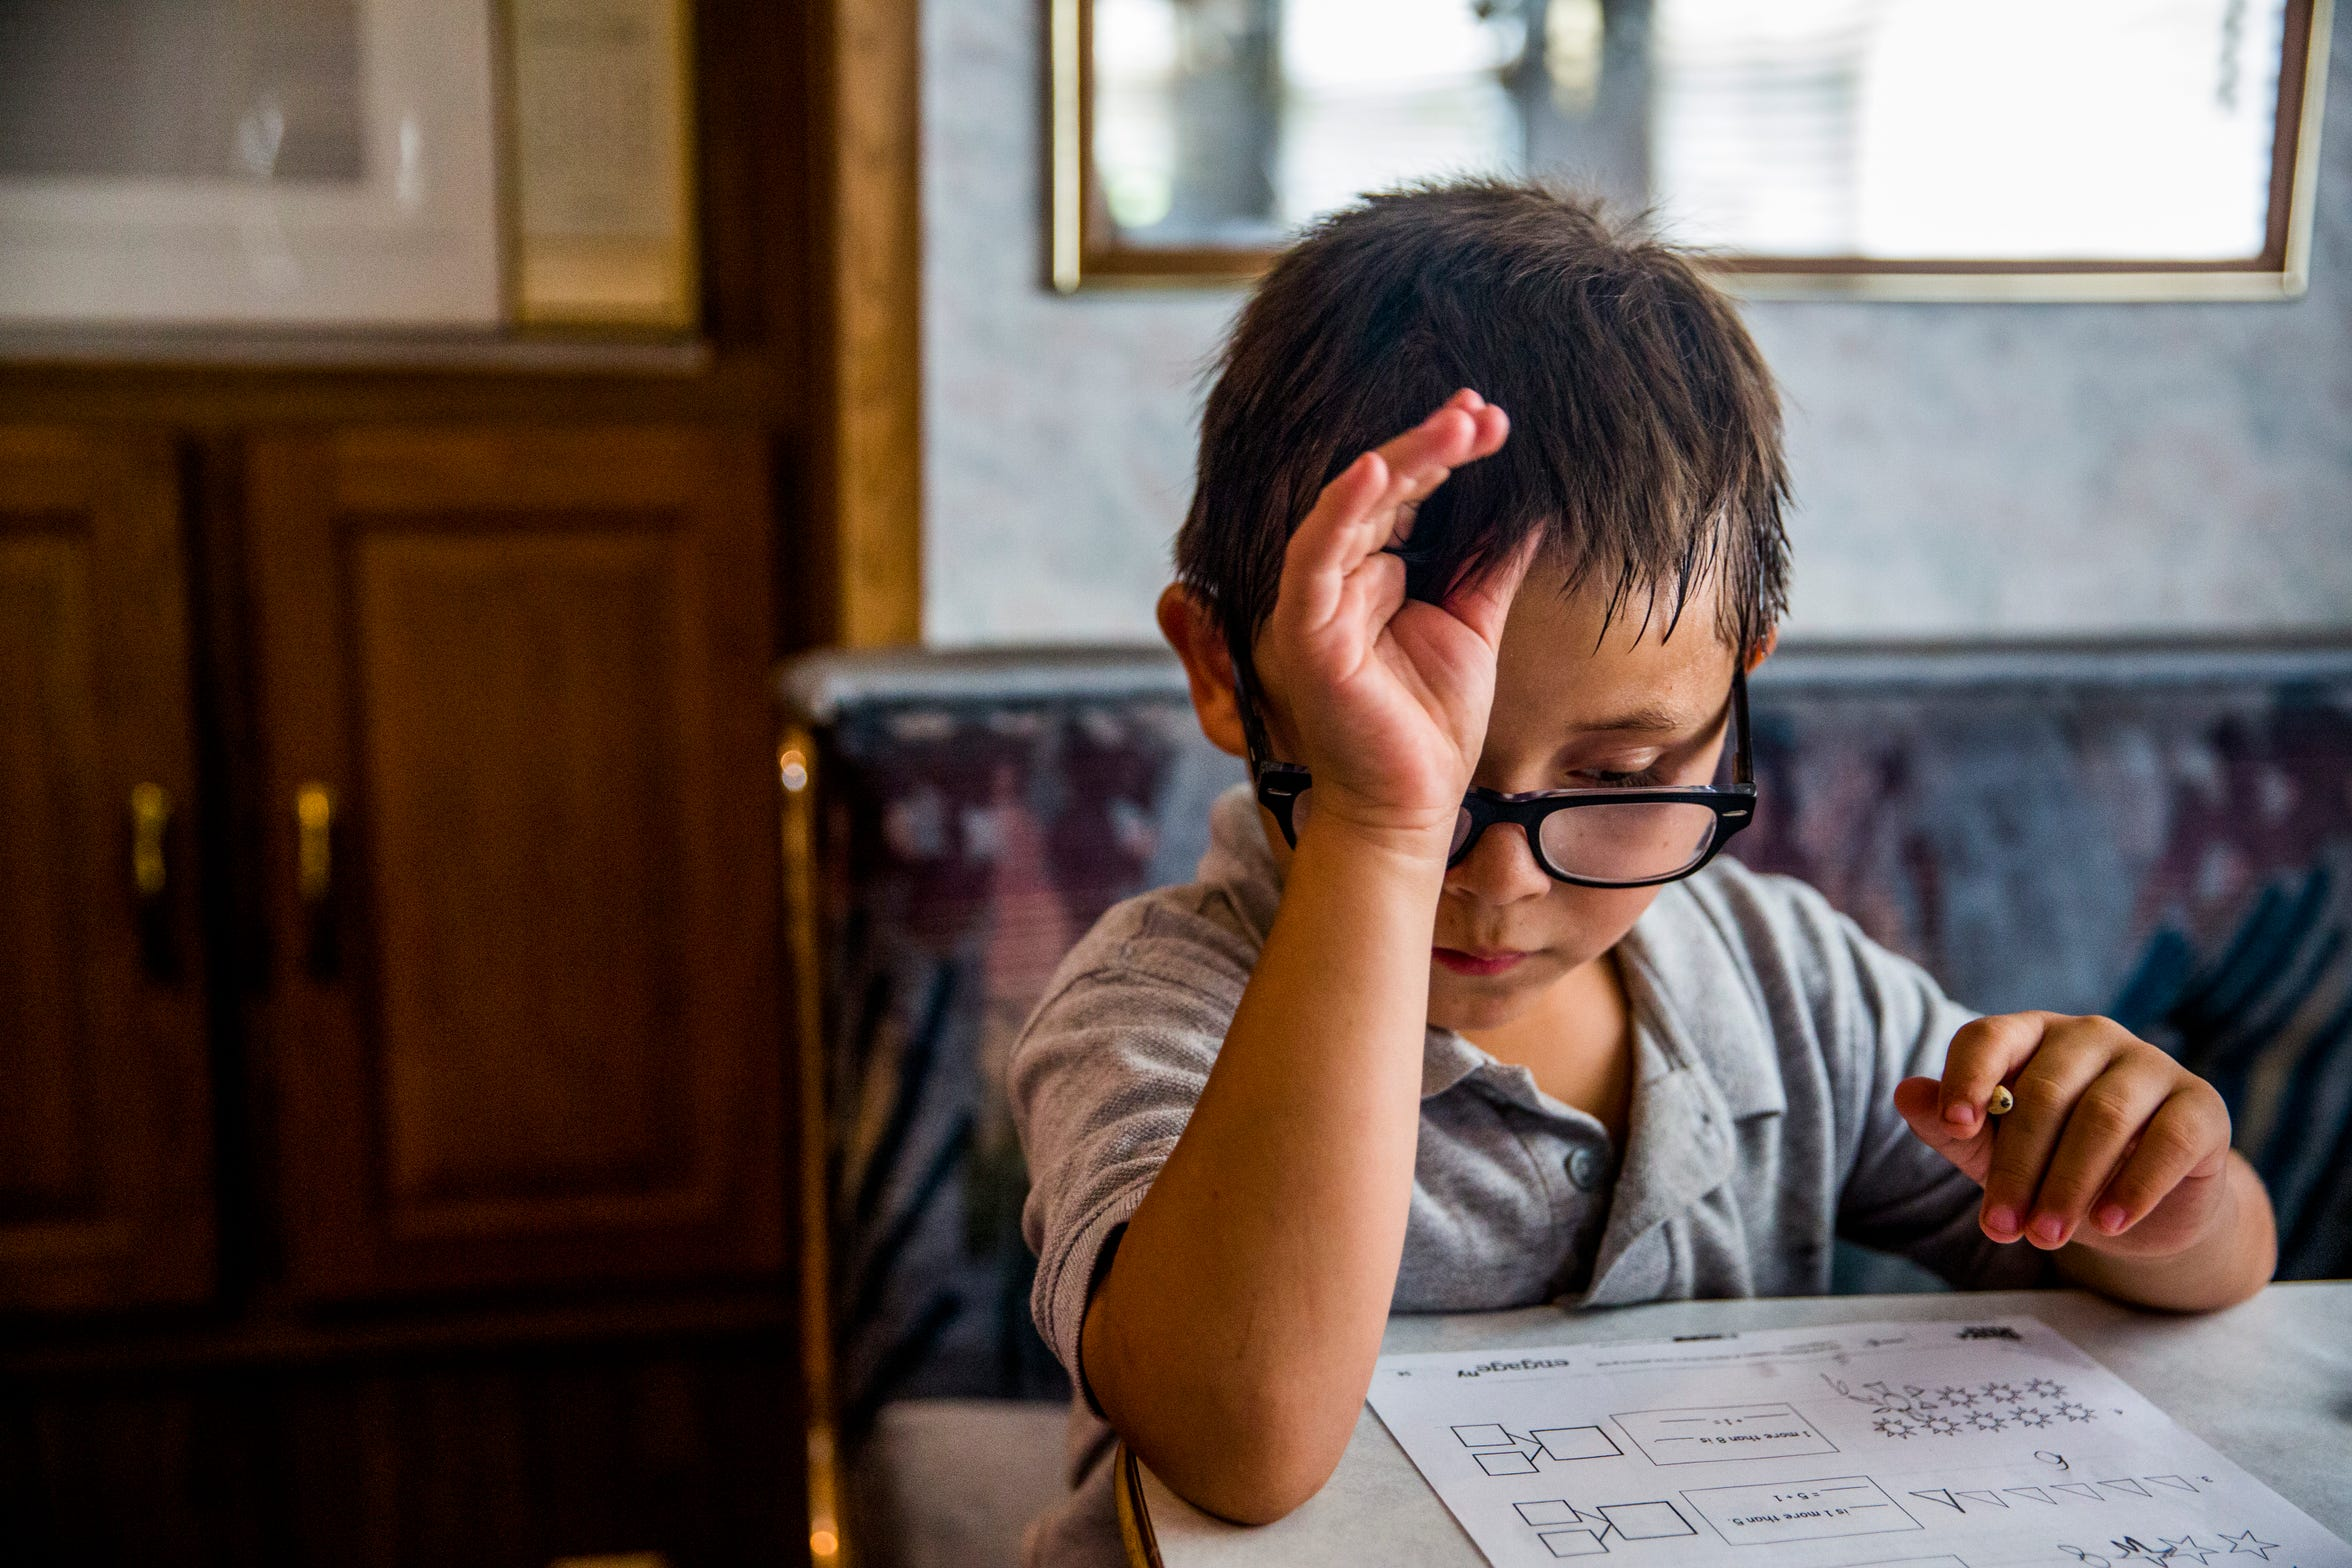 Casey Soto, 6, works on his homework in the RV he is staying in with his great-aunt in Immokalee on Wednesday, Aug. 22, 2018.